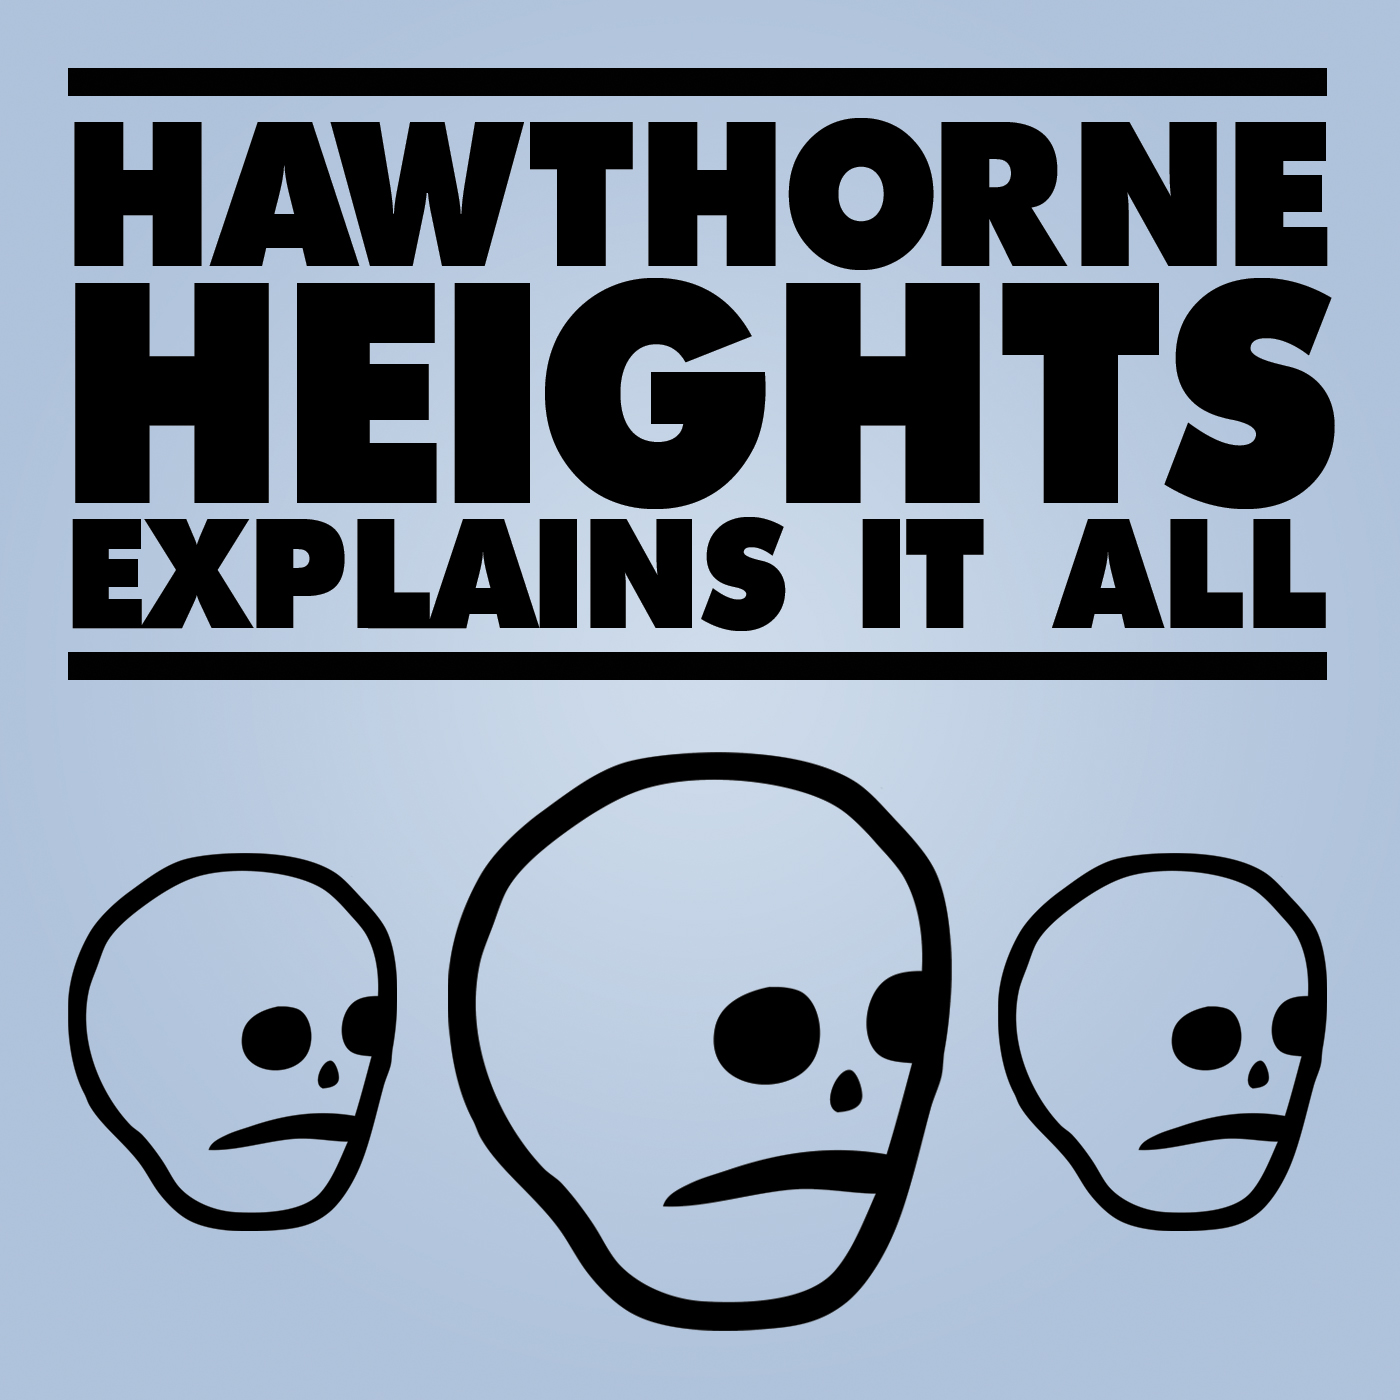 Hawthorne Heights Explains It All